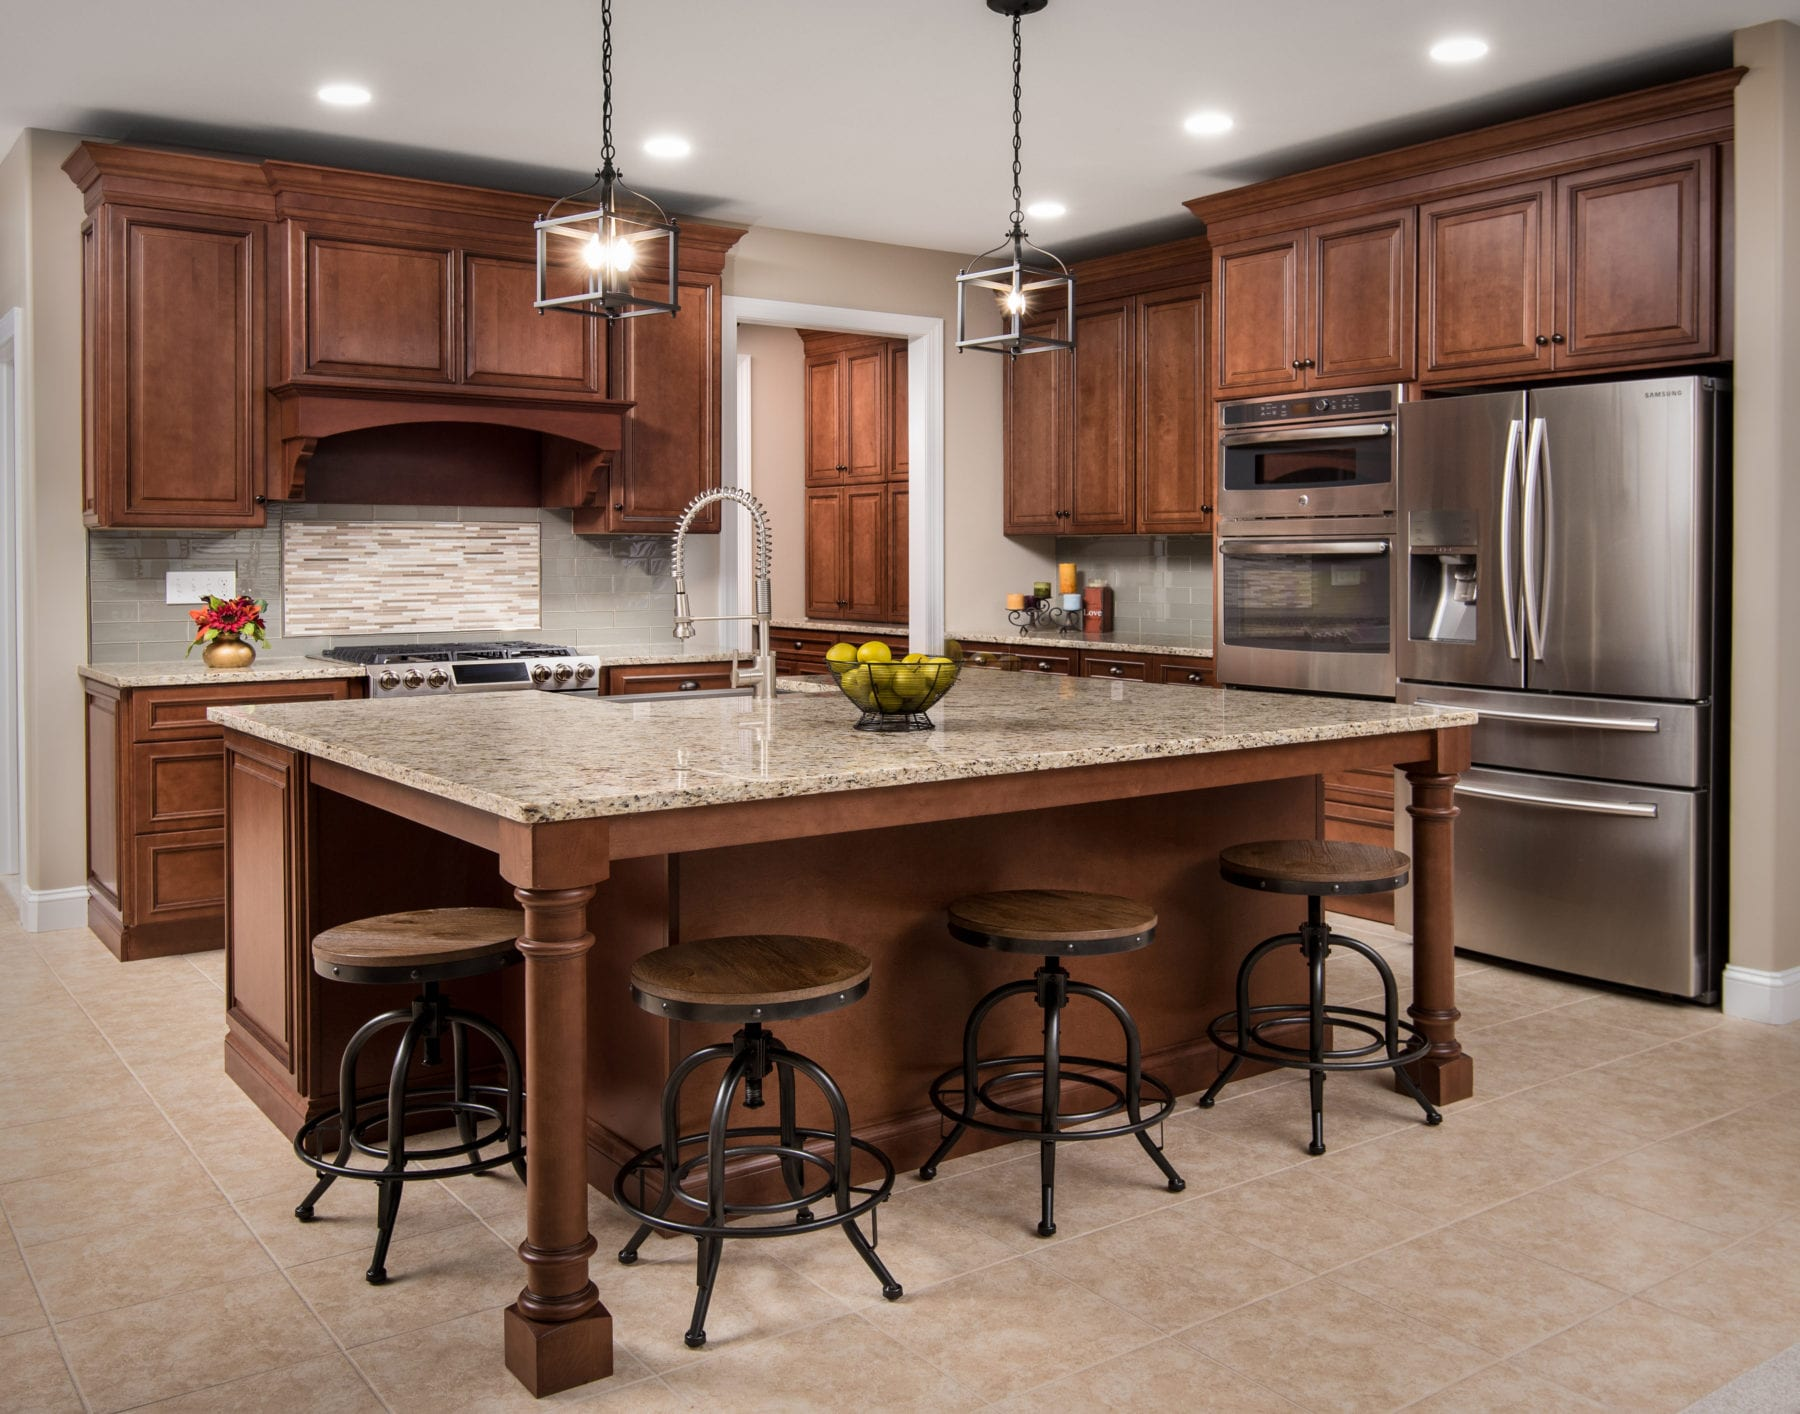 Kitchen Renovation Companies